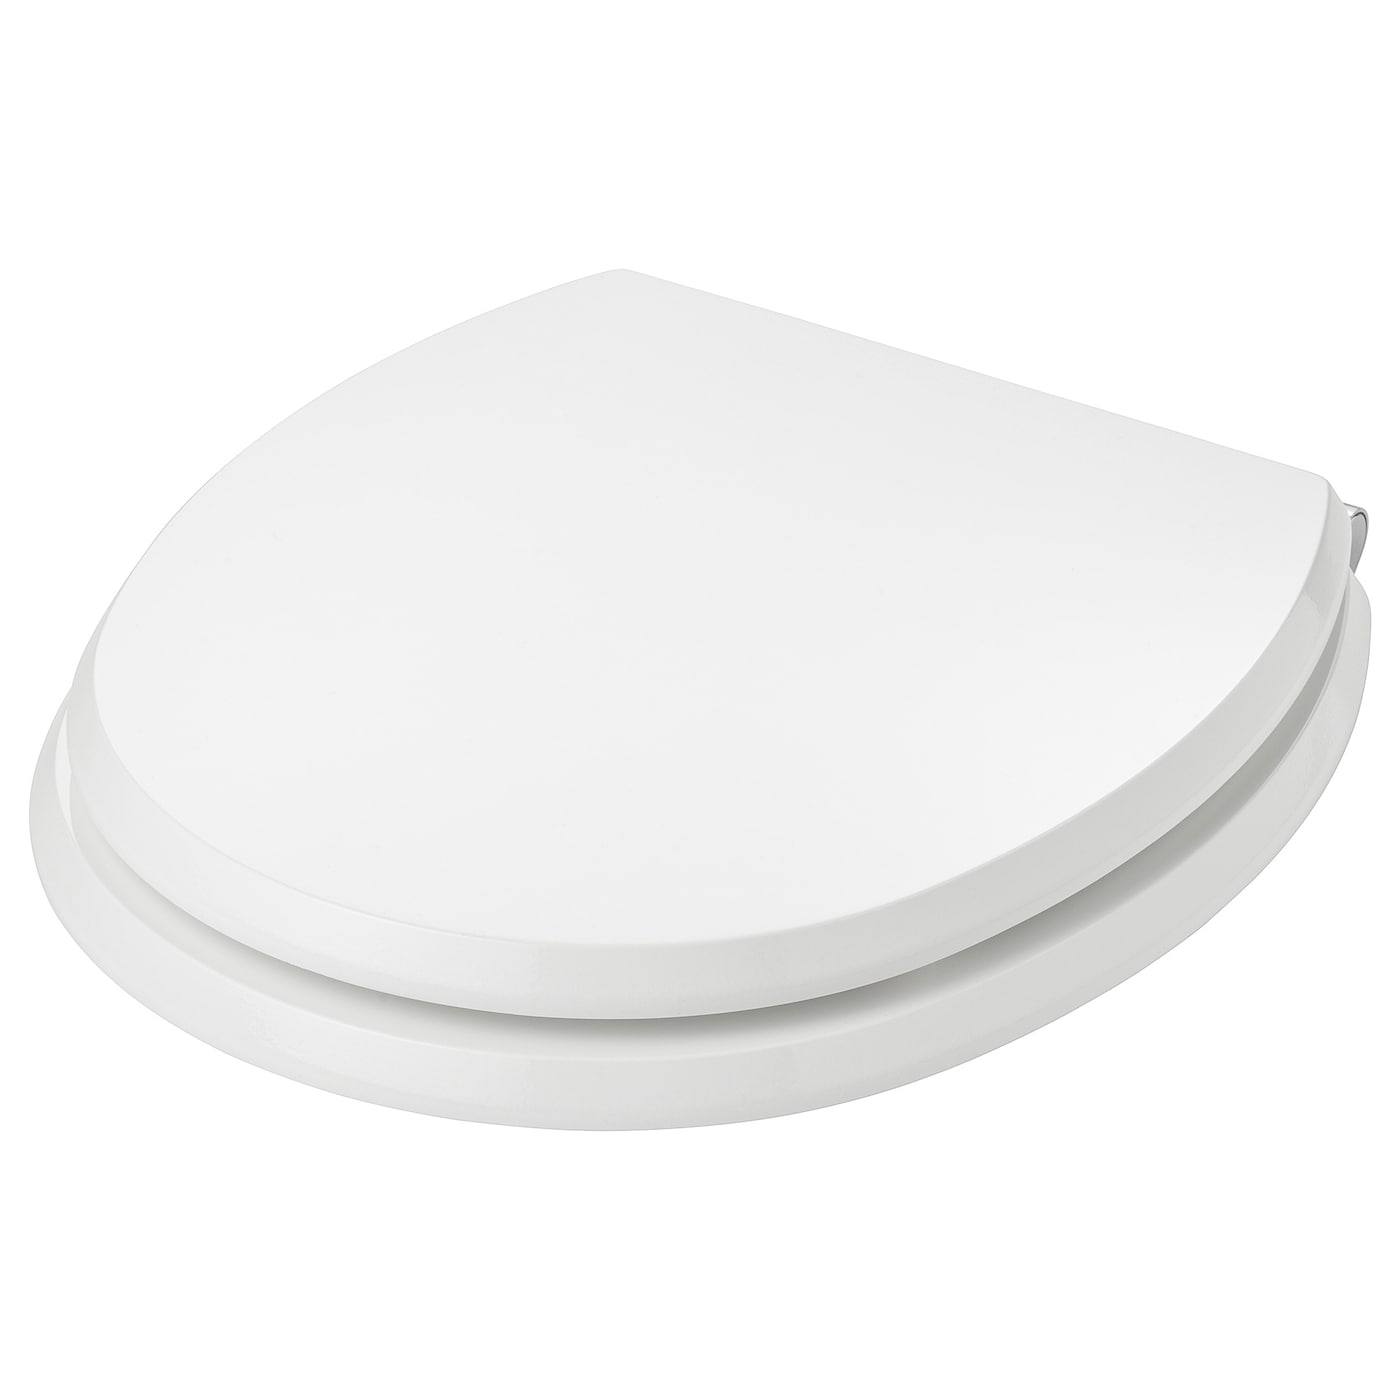 Incredible Toilet Seat Ekaren White High Gloss Caraccident5 Cool Chair Designs And Ideas Caraccident5Info